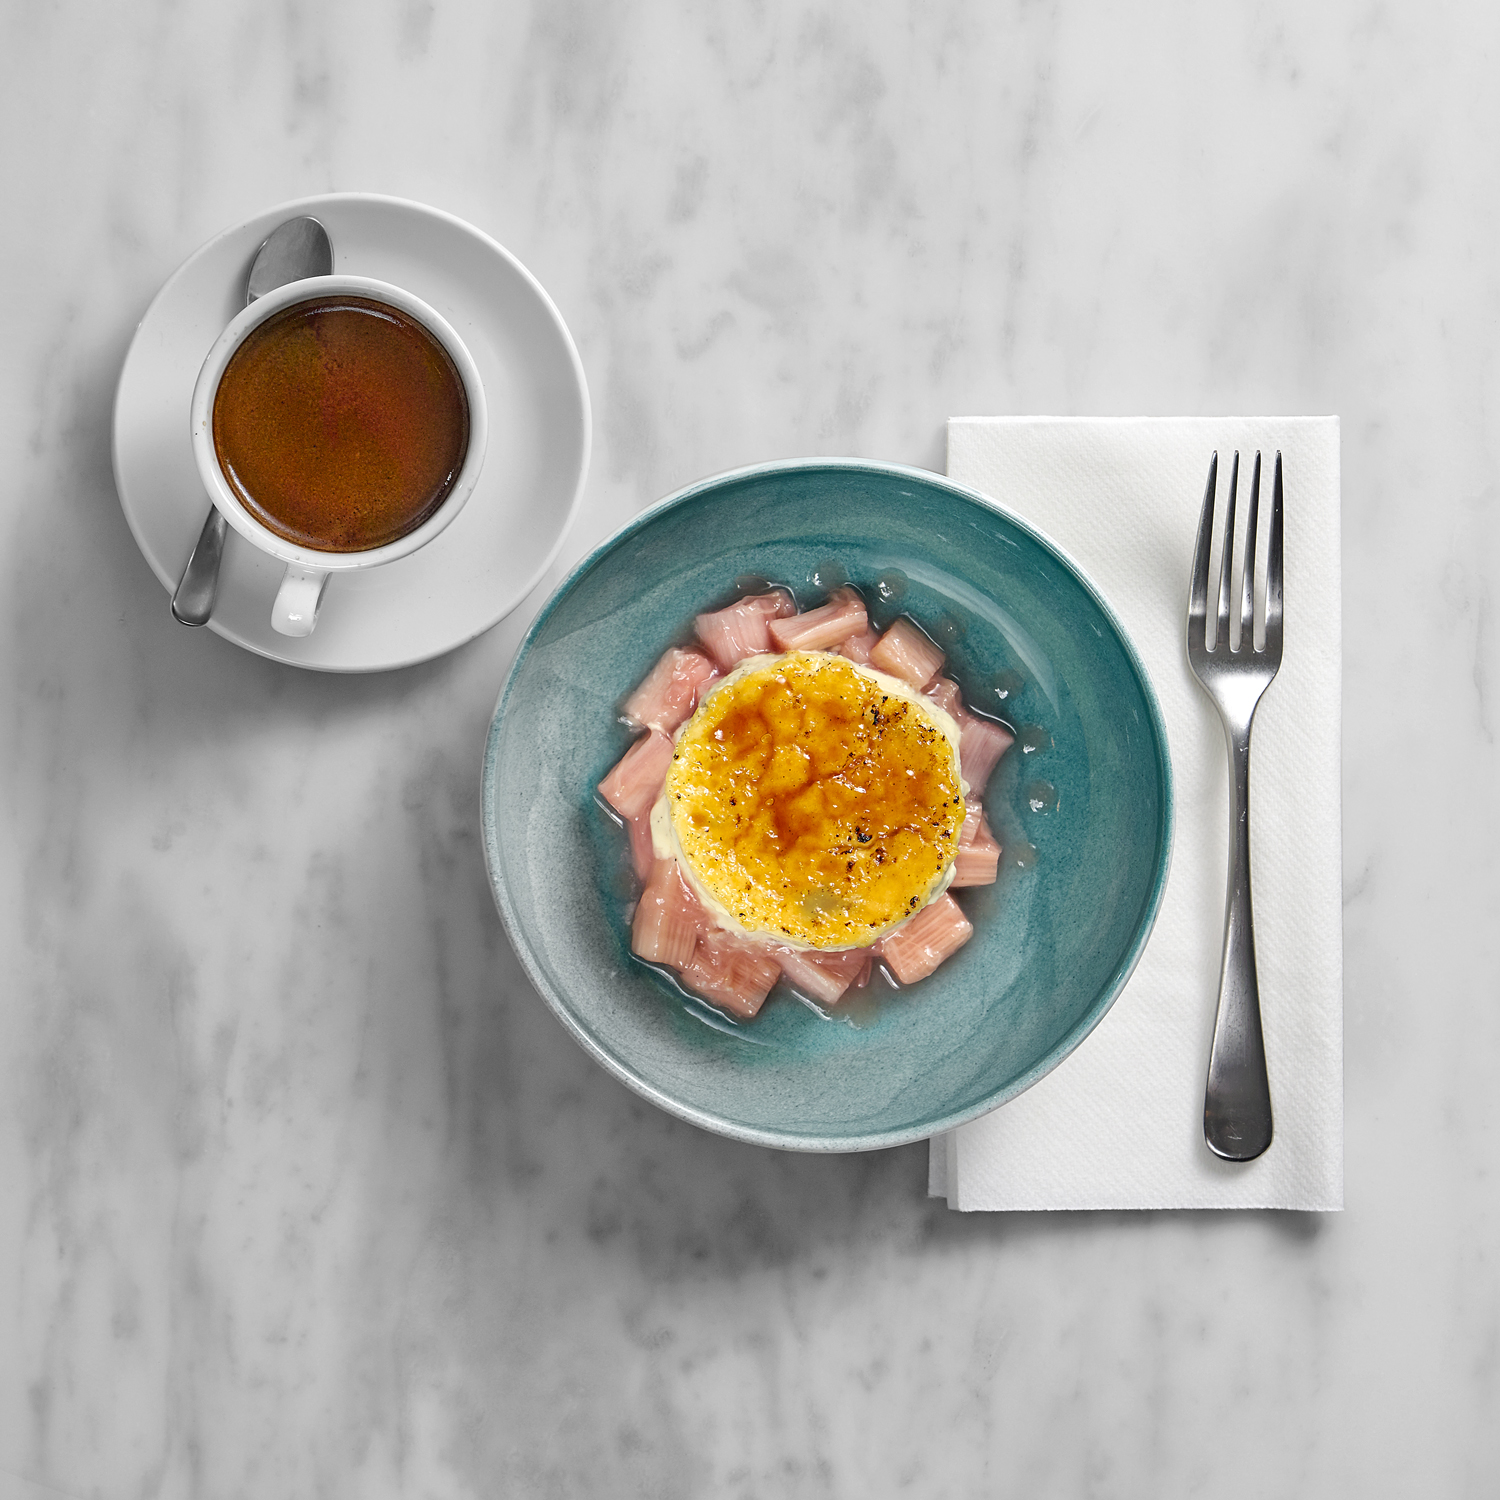 London food photographer chris howlett. Desserts and coffee make up this still life food photograph